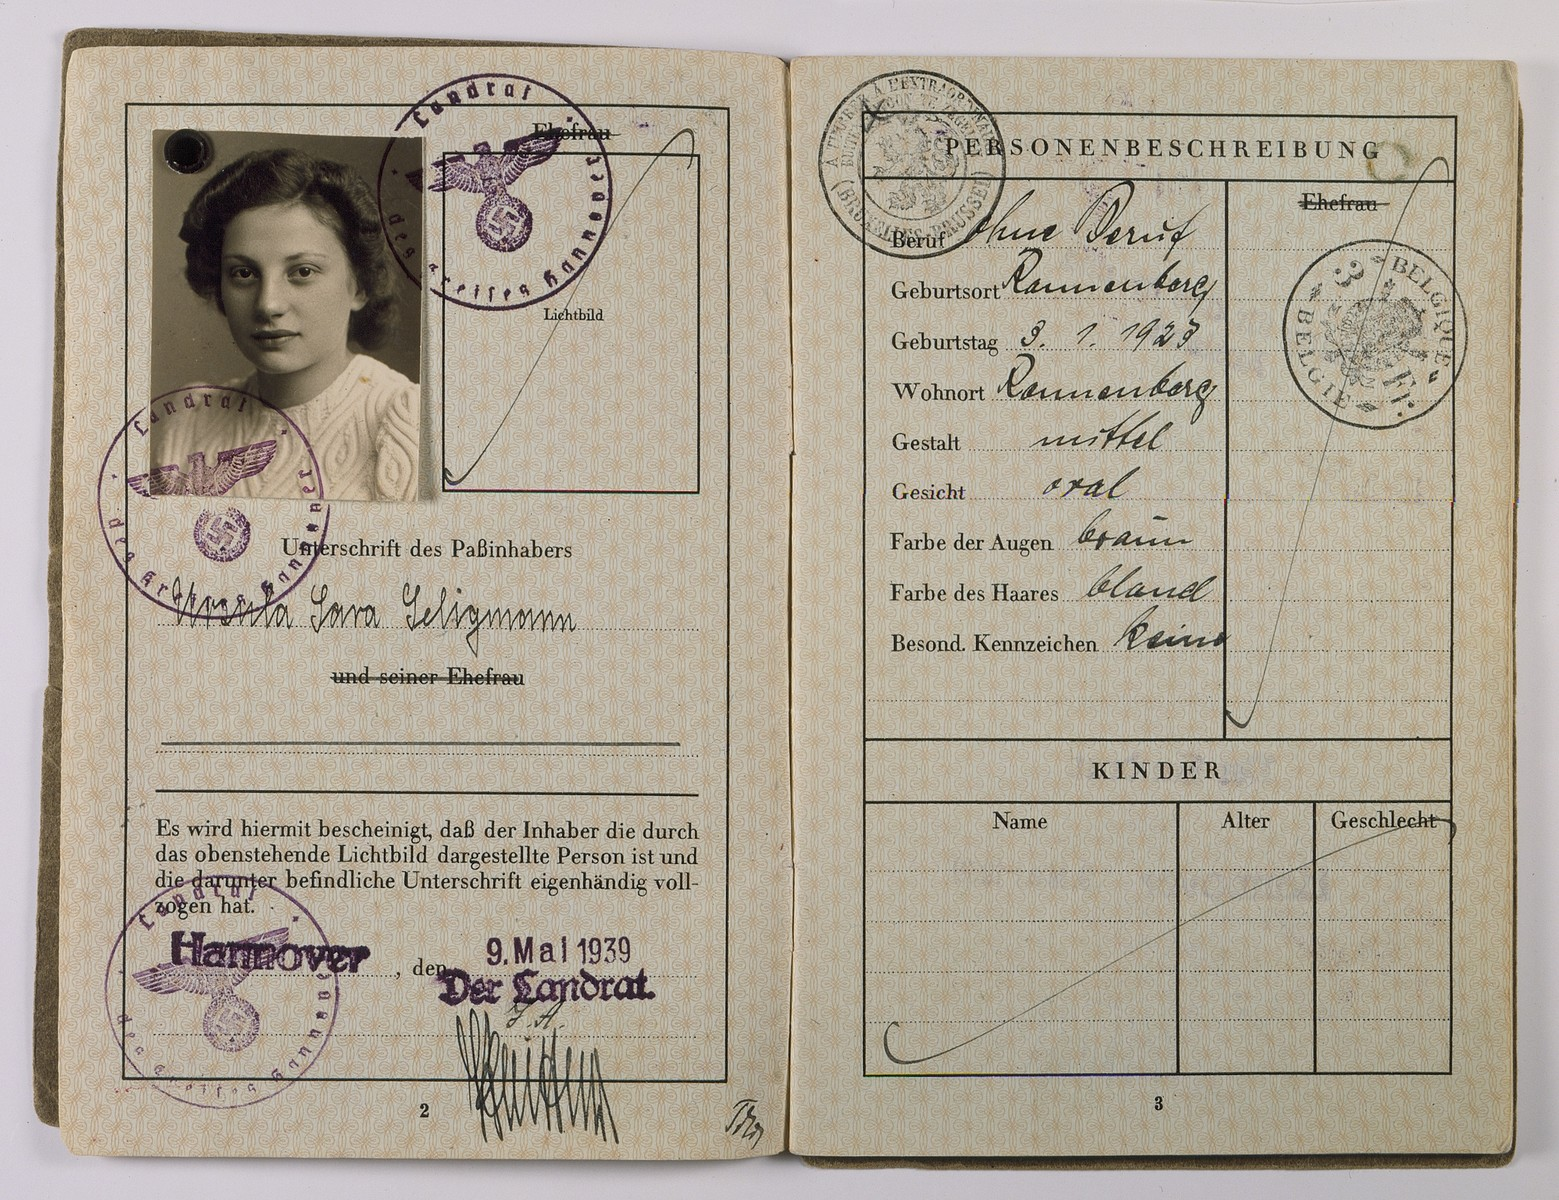 German passport of Ursula Seligmann.